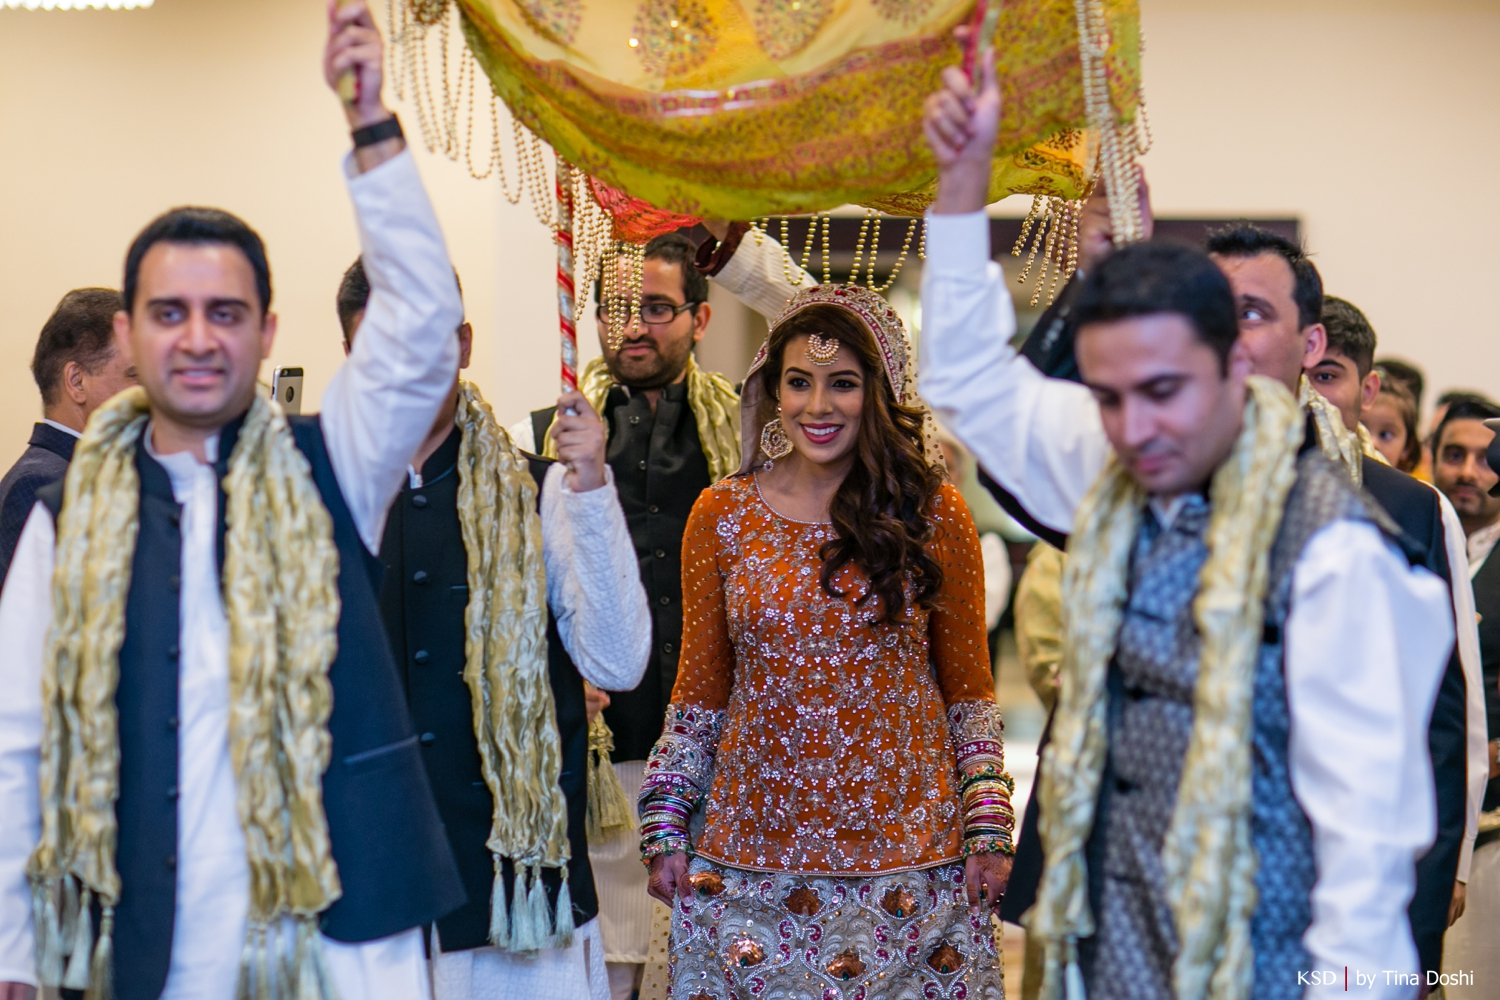 nj_south_asian_wedding_0057